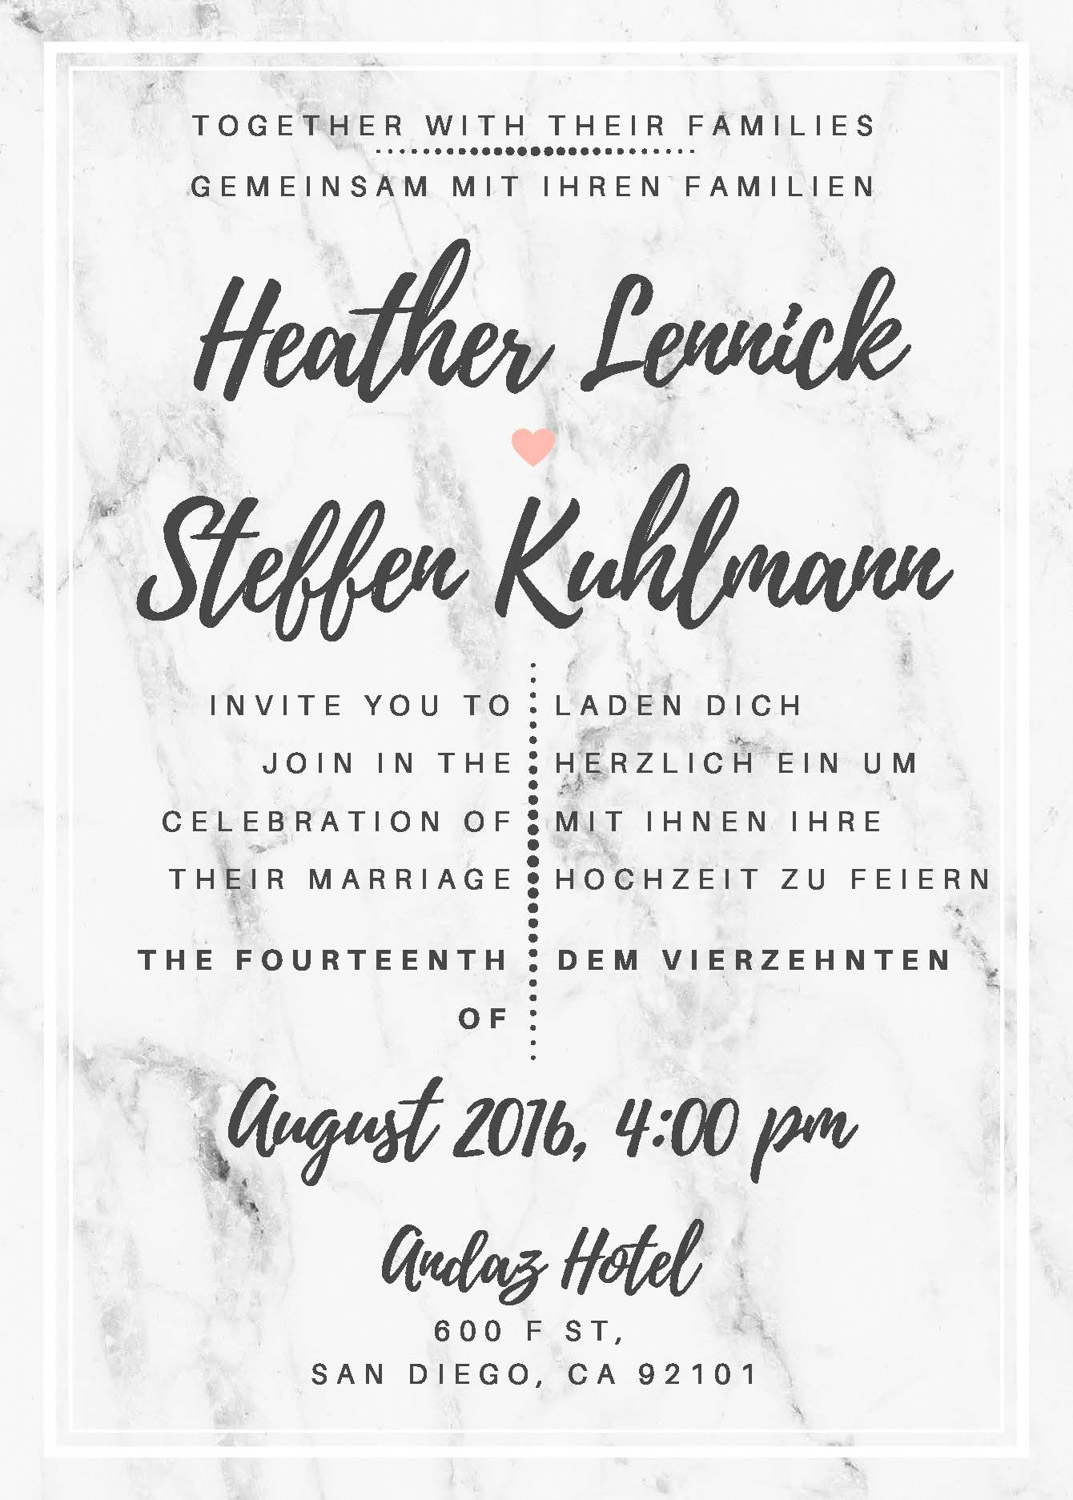 Bilingual marble wedding invitation in English and German